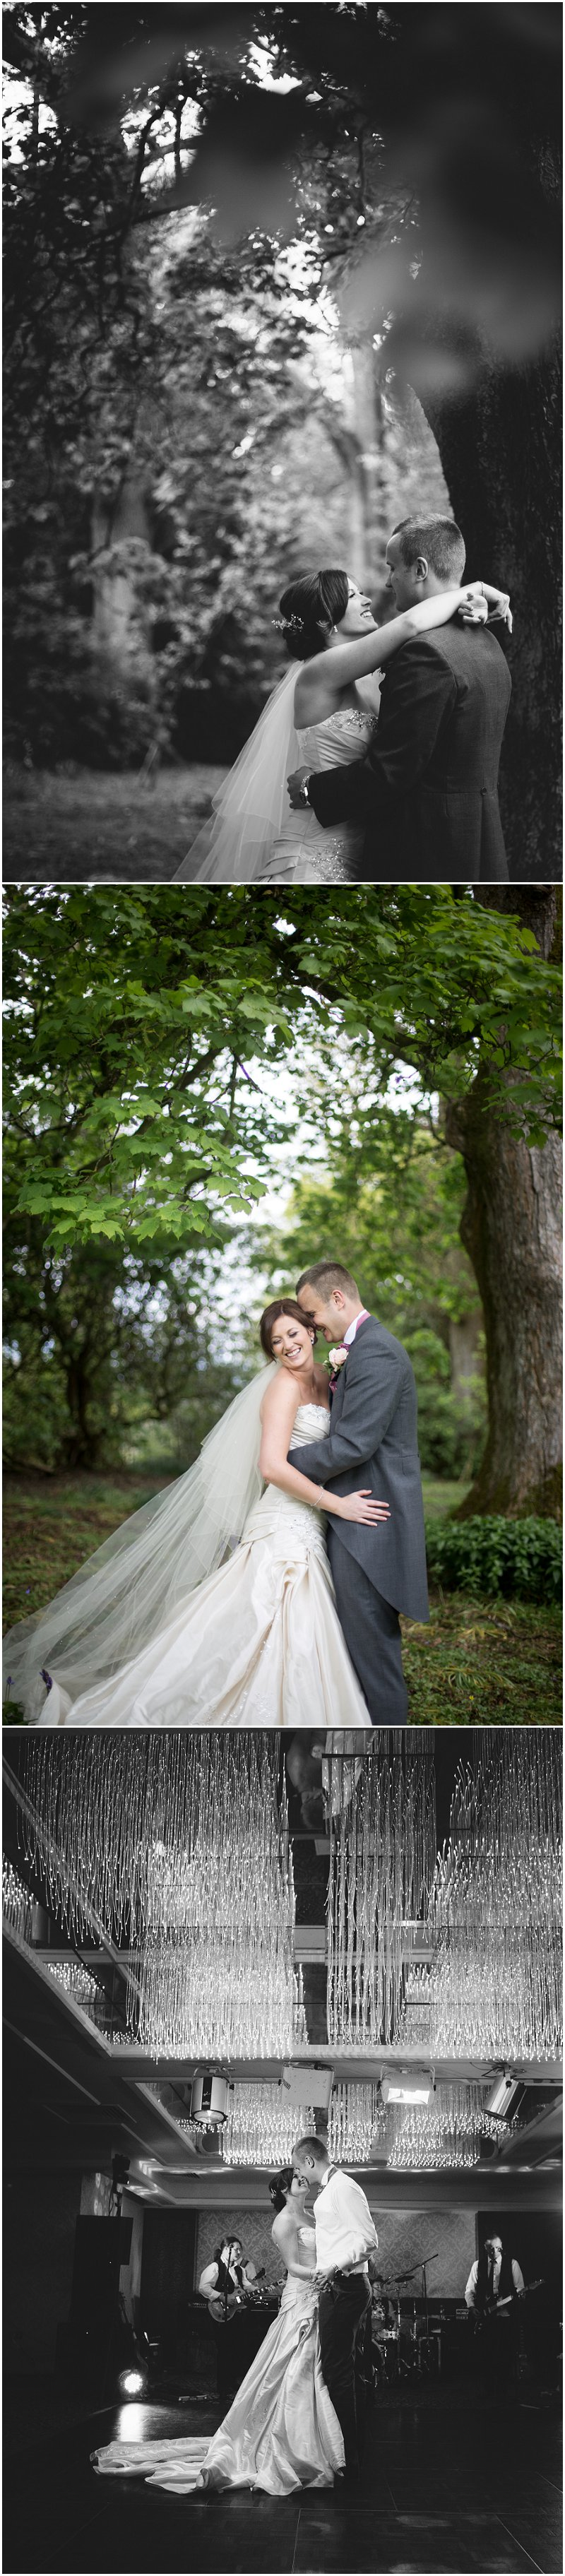 Gorgeous bride and groom portraits at Armathwaite Hall wedding | Photographer Cumbria